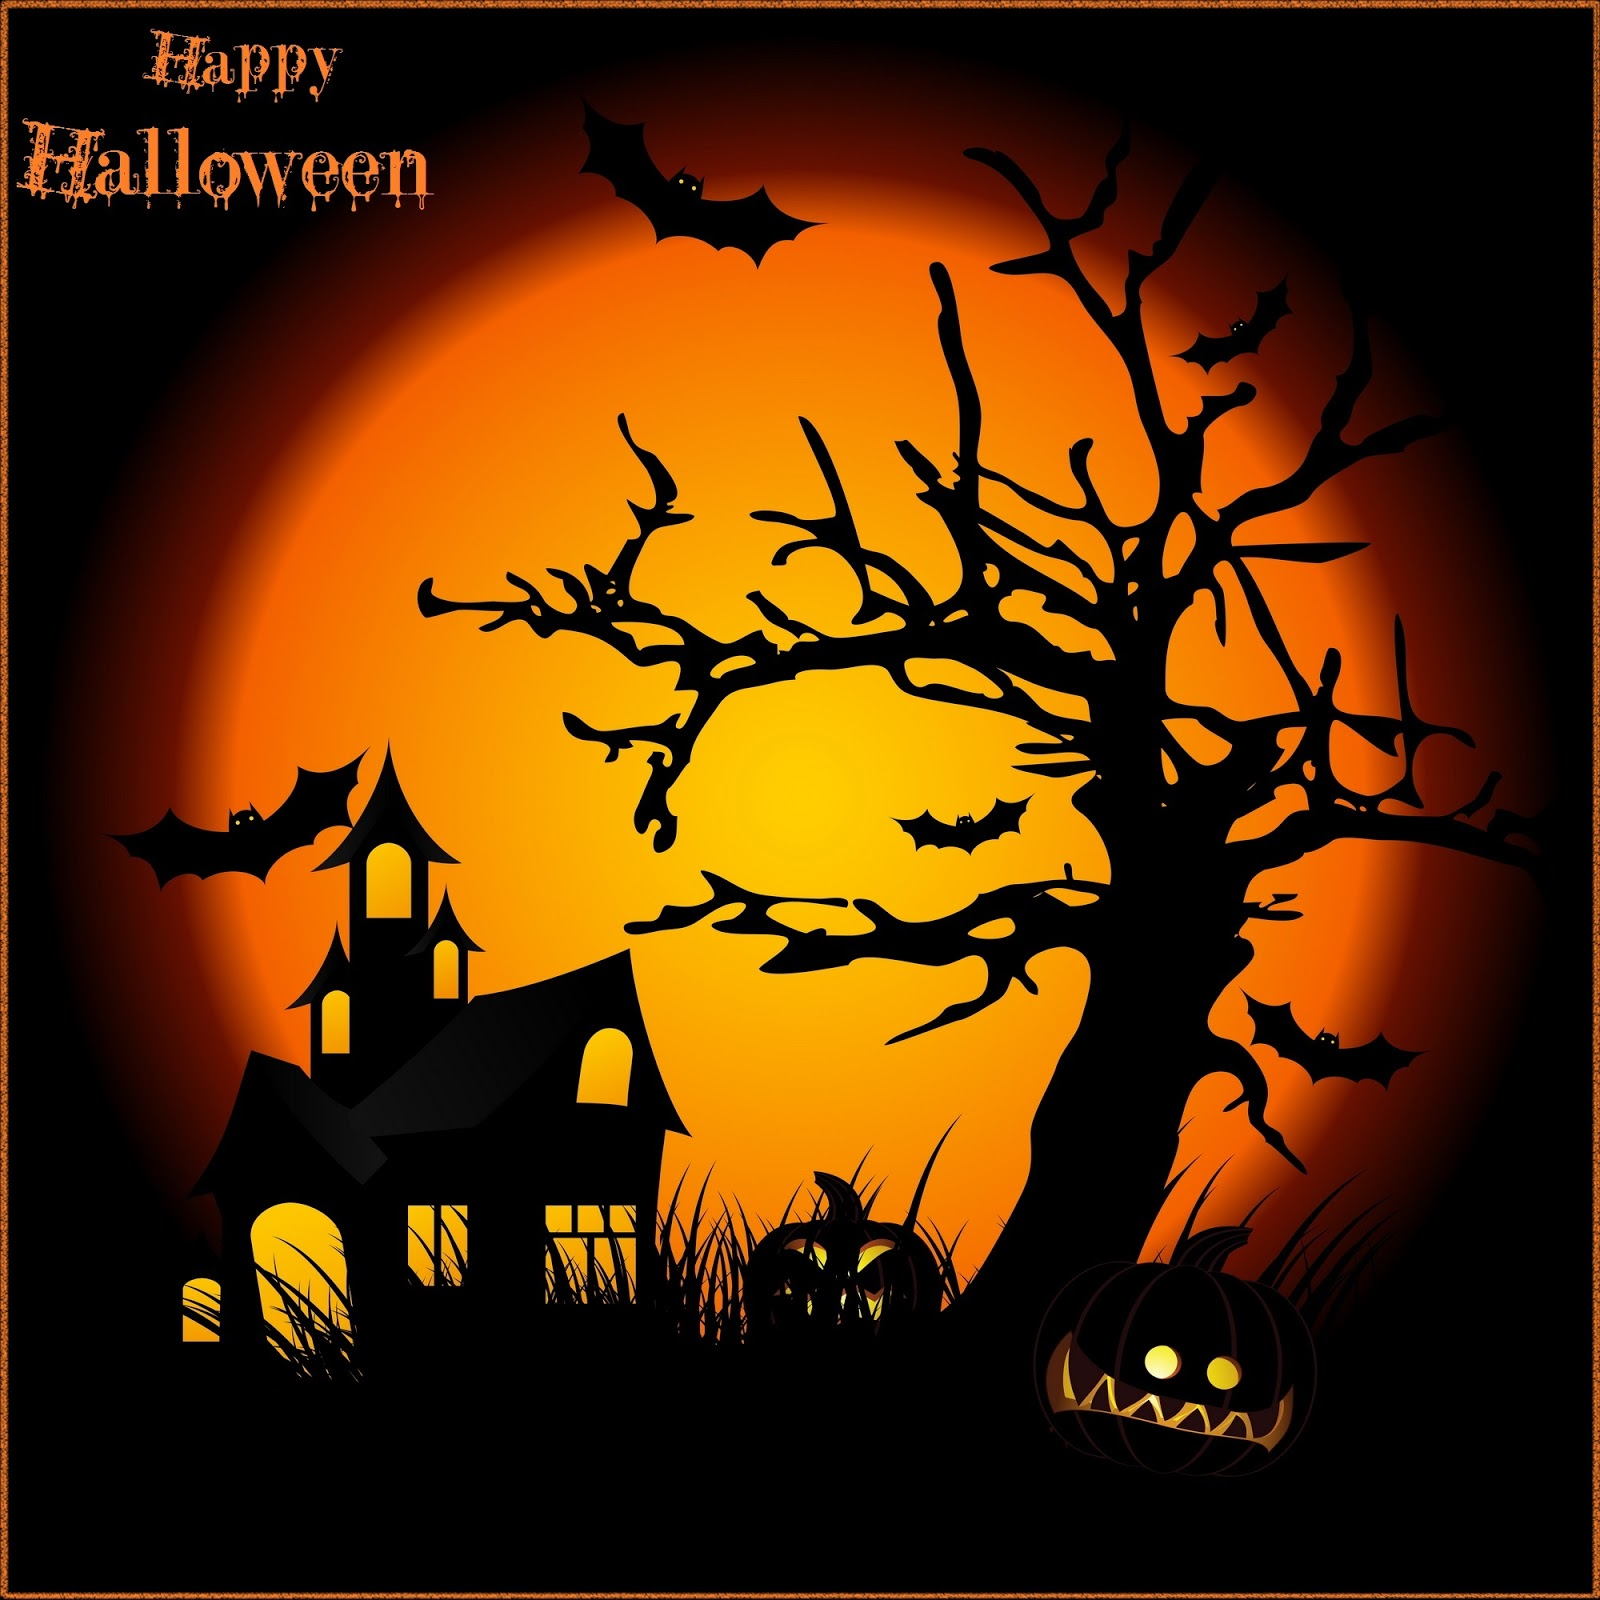 Halloween cards gidiyedformapolitica halloween cards bookmarktalkfo Images